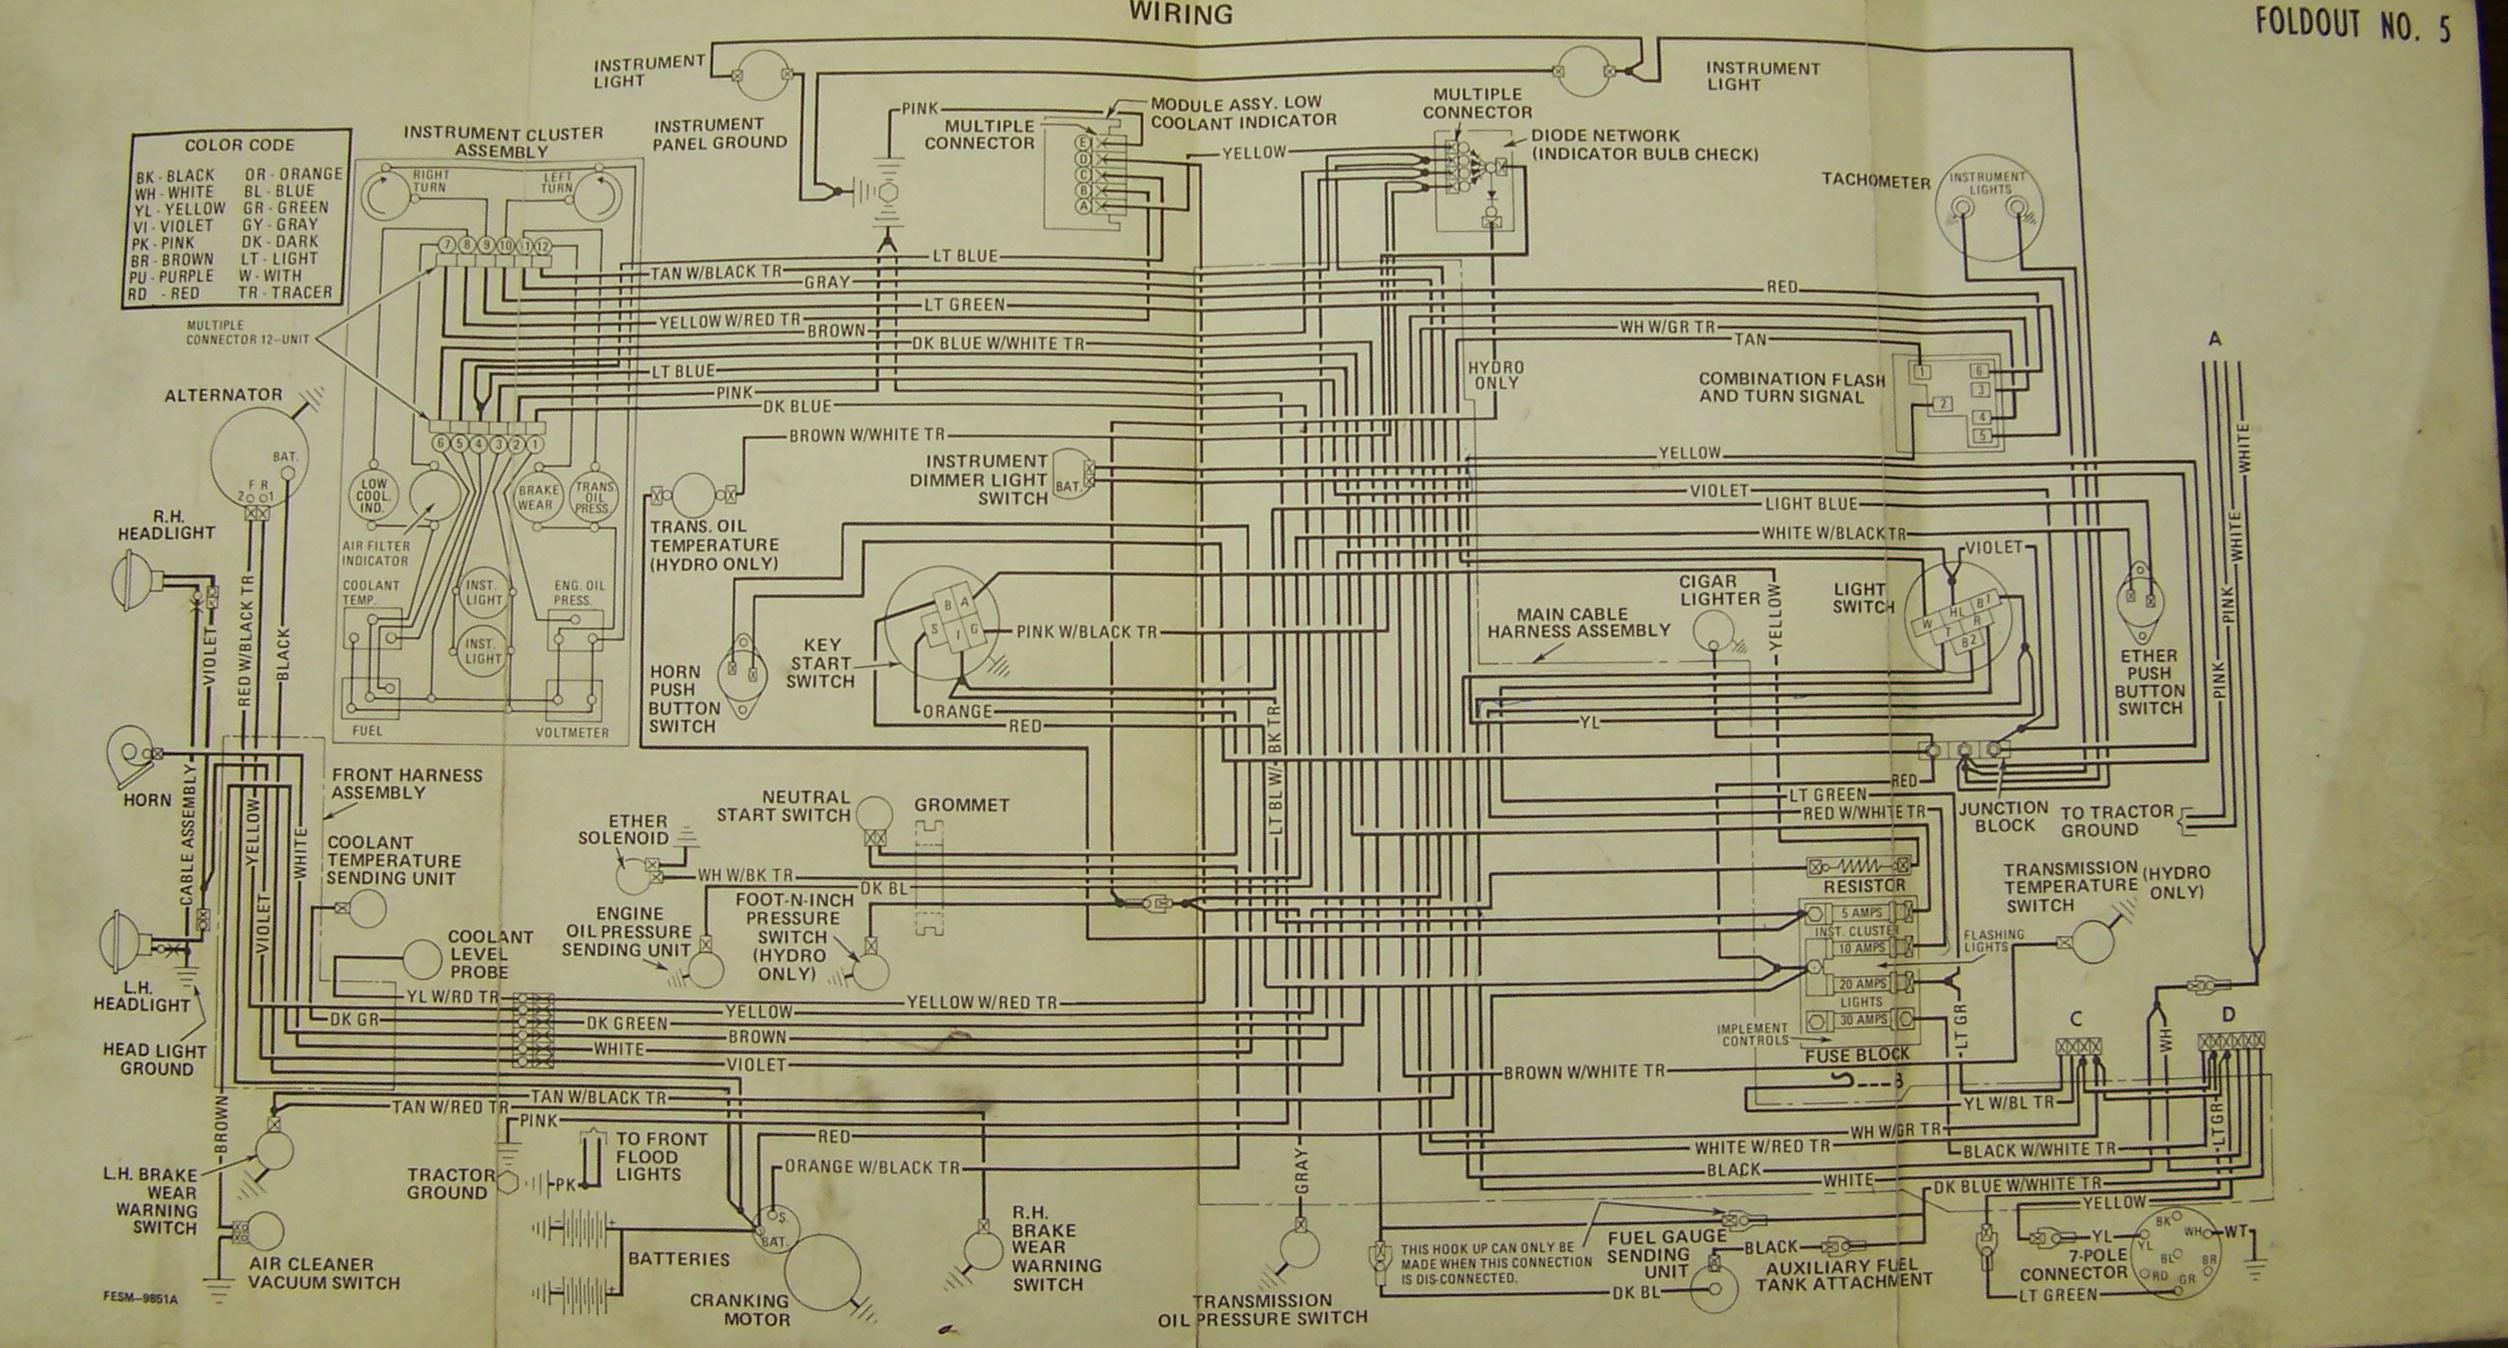 86series5 ih 574 wiring diagram case 430 tractor wiring diagram \u2022 wiring International 4300 Wiring Diagram Schematics at edmiracle.co